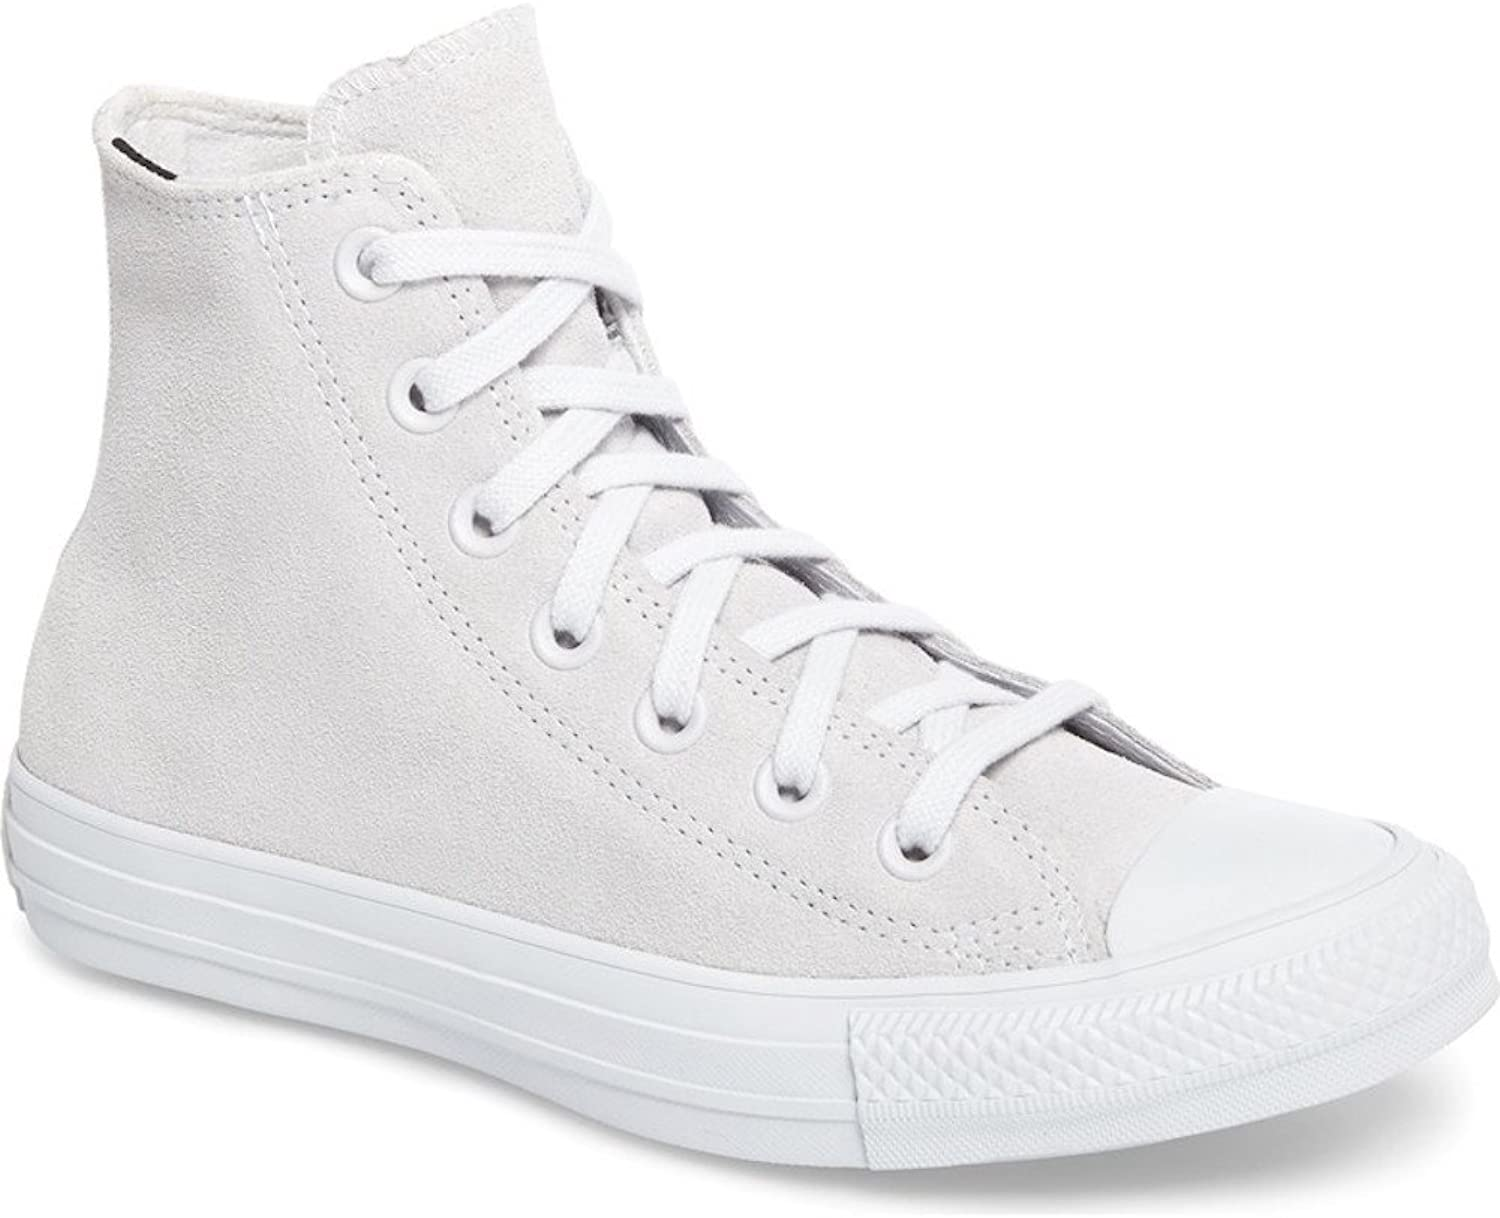 Converse Chuck Taylor All Star Plush Suede Ox Sneaker